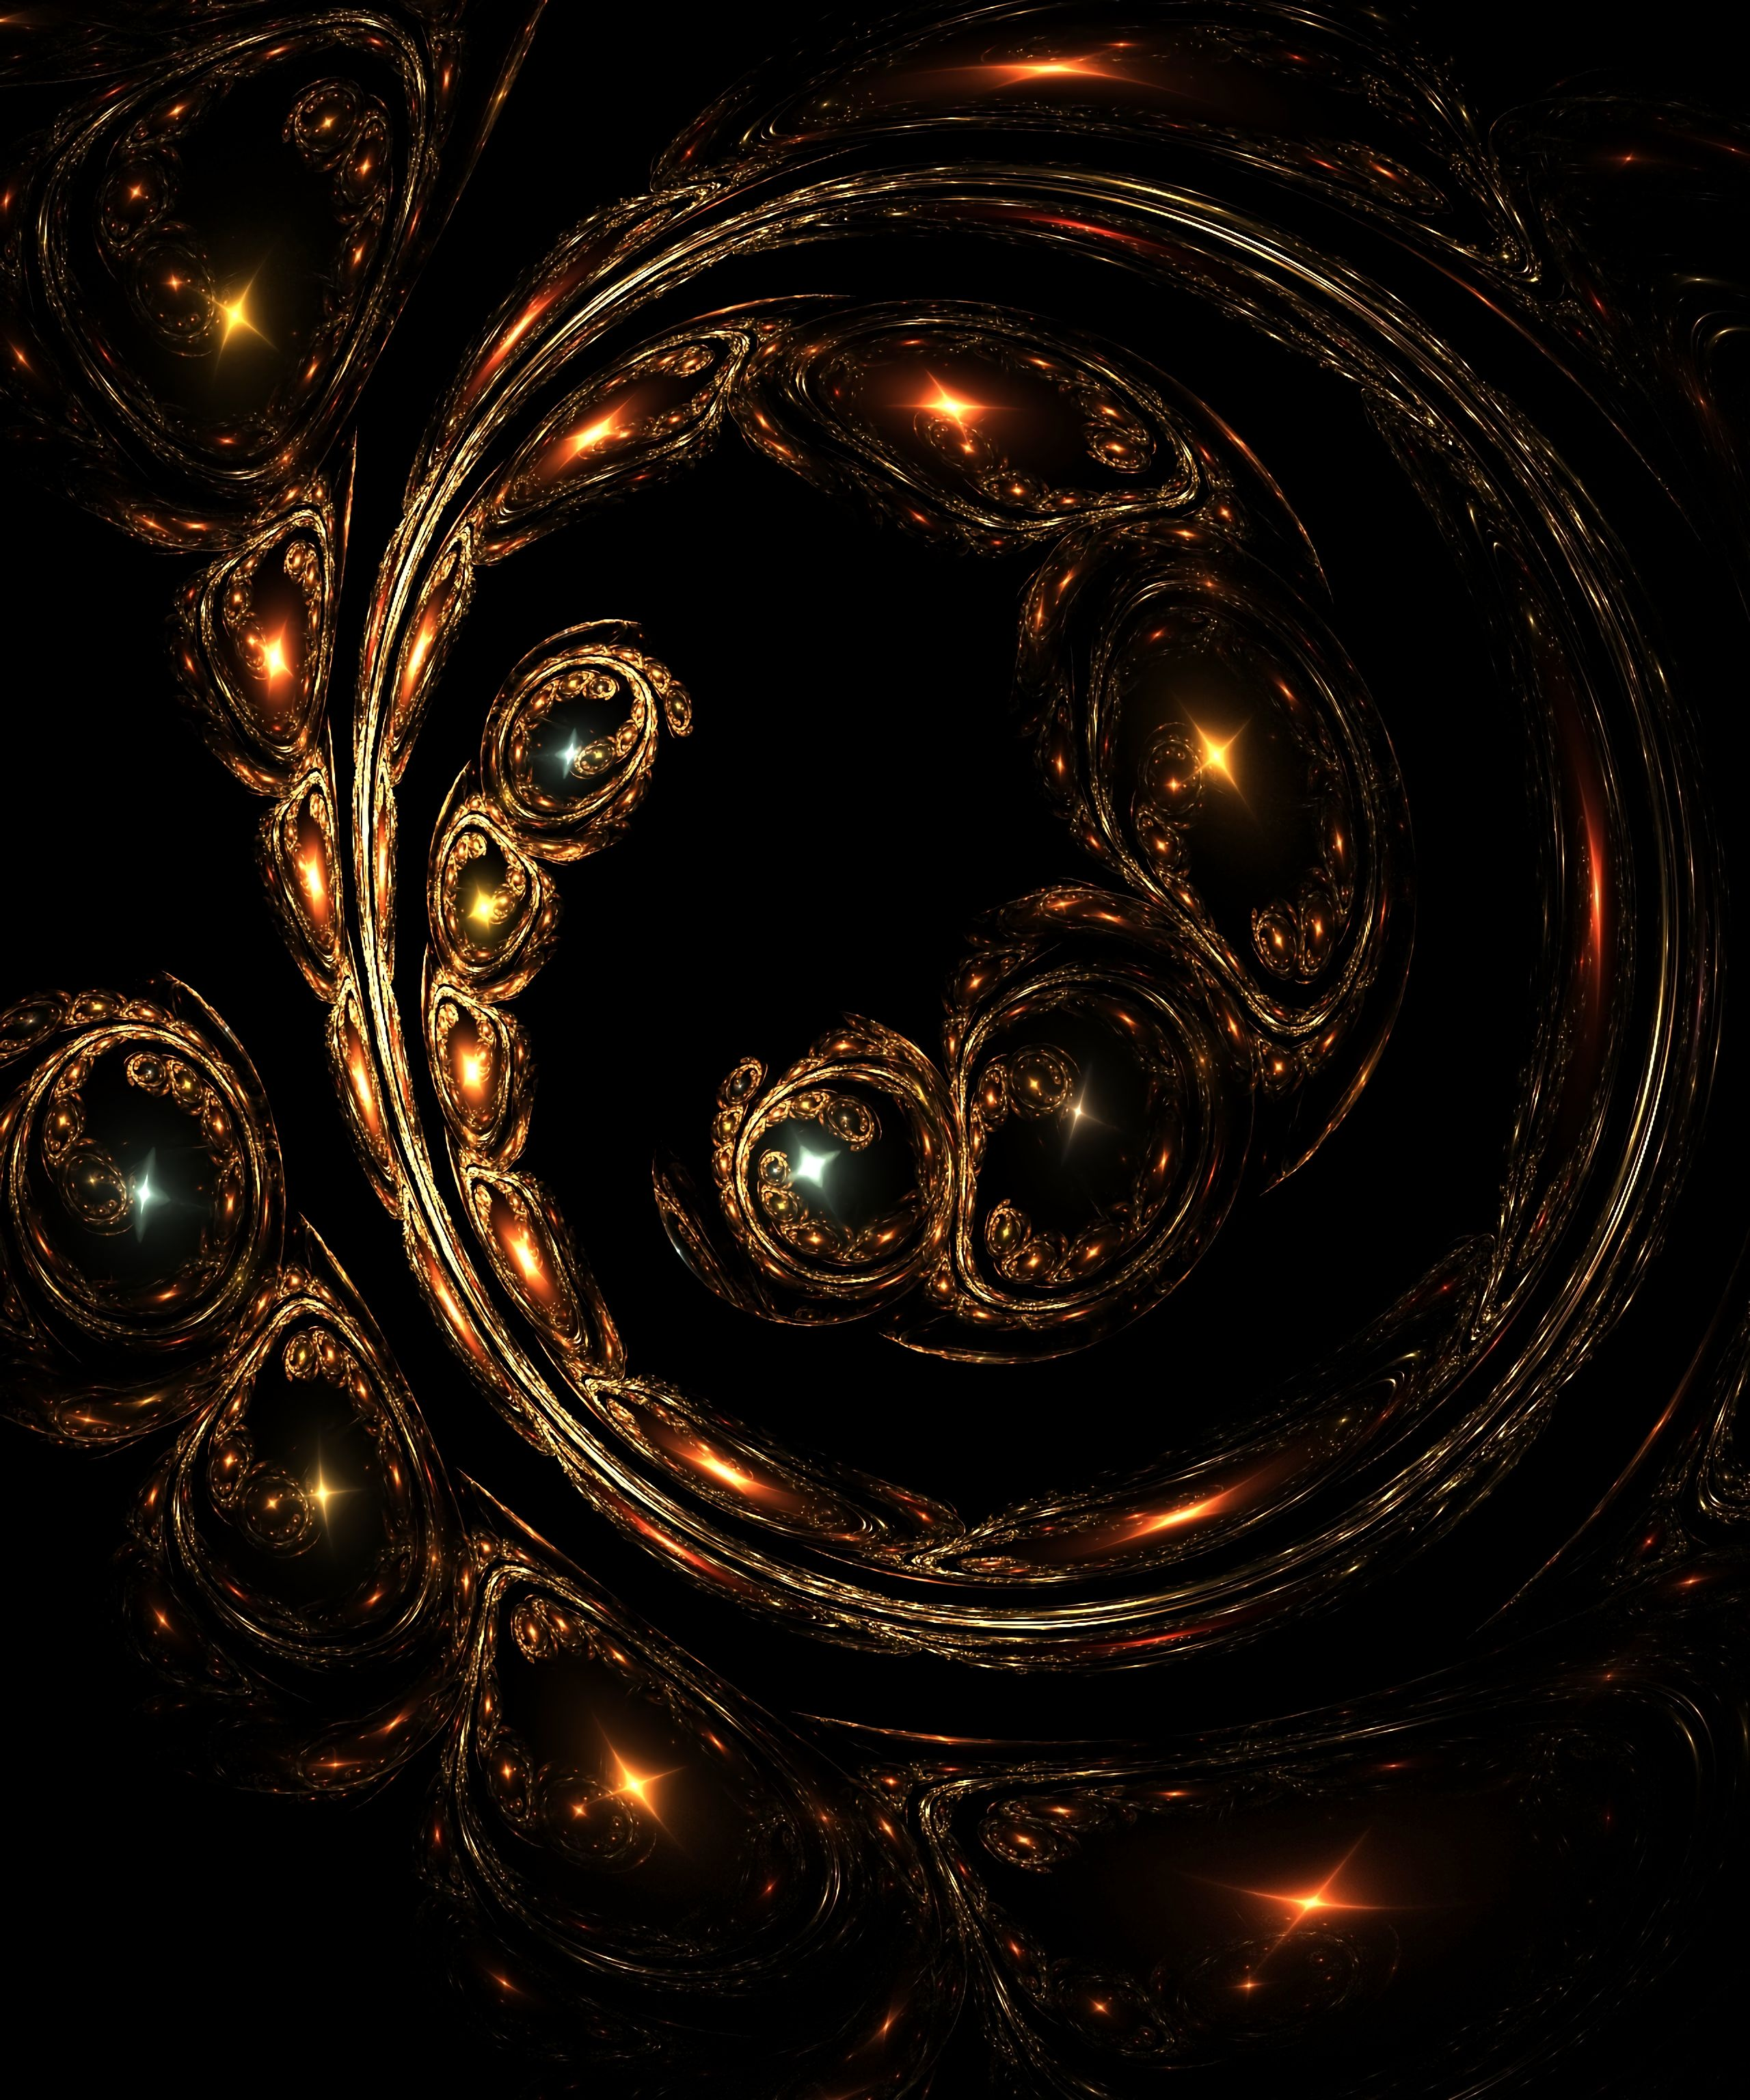 126350 Screensavers and Wallpapers Swirling for phone. Download Abstract, Dark, Glare, Fractal, Glow, Swirling, Involute pictures for free